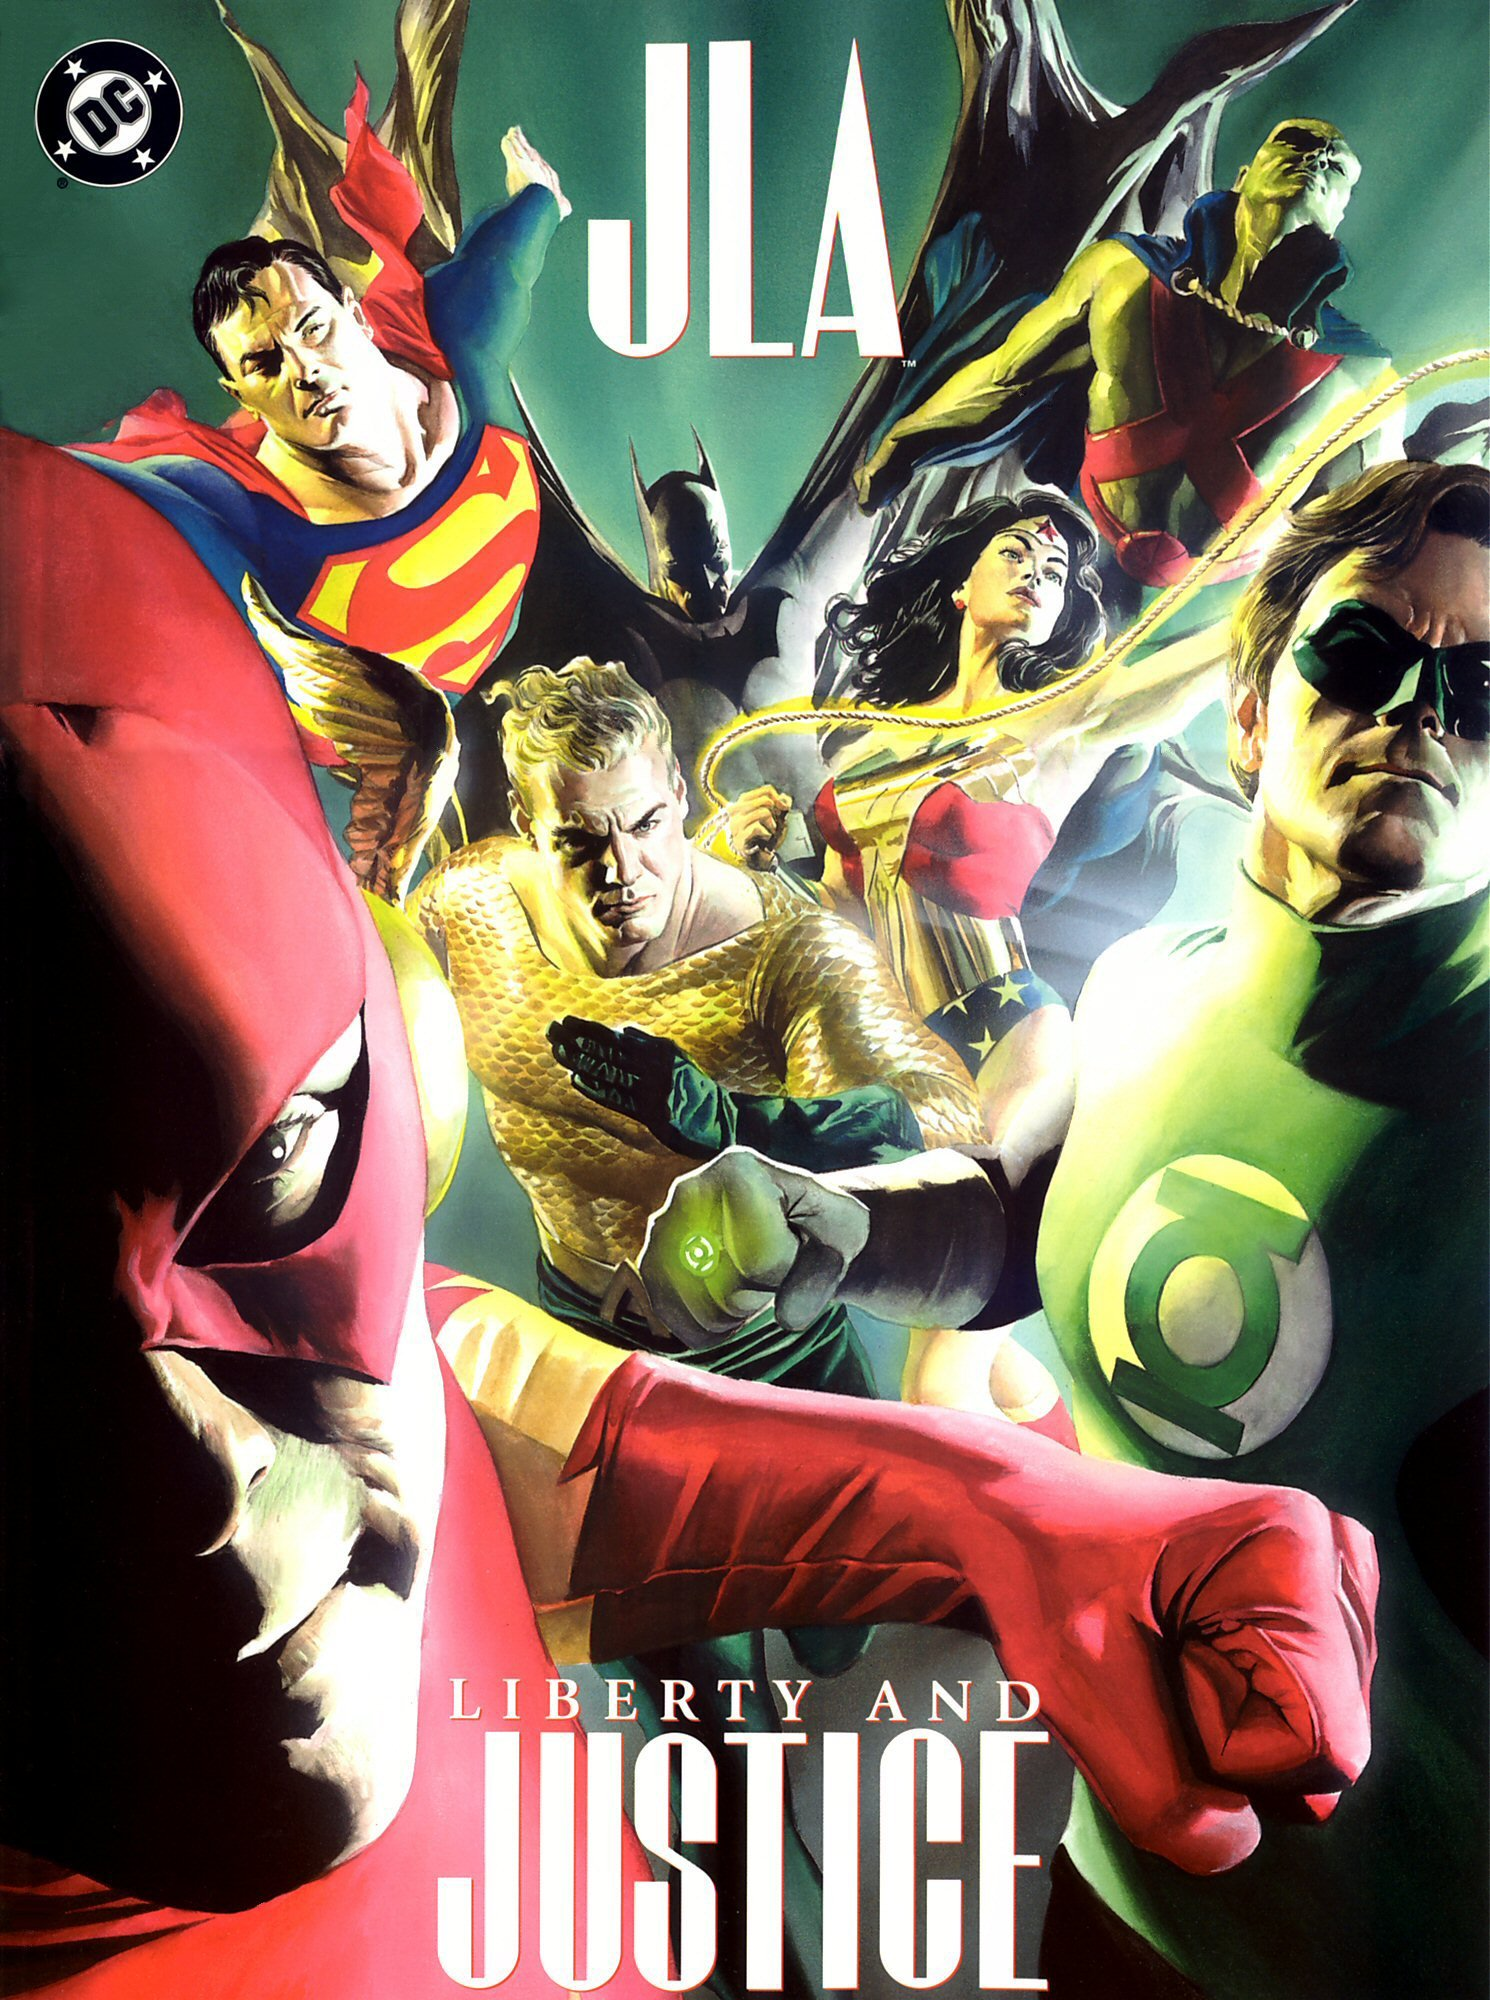 JLA: Liberty and Justice (2003) #1, cover by Alex Ross.